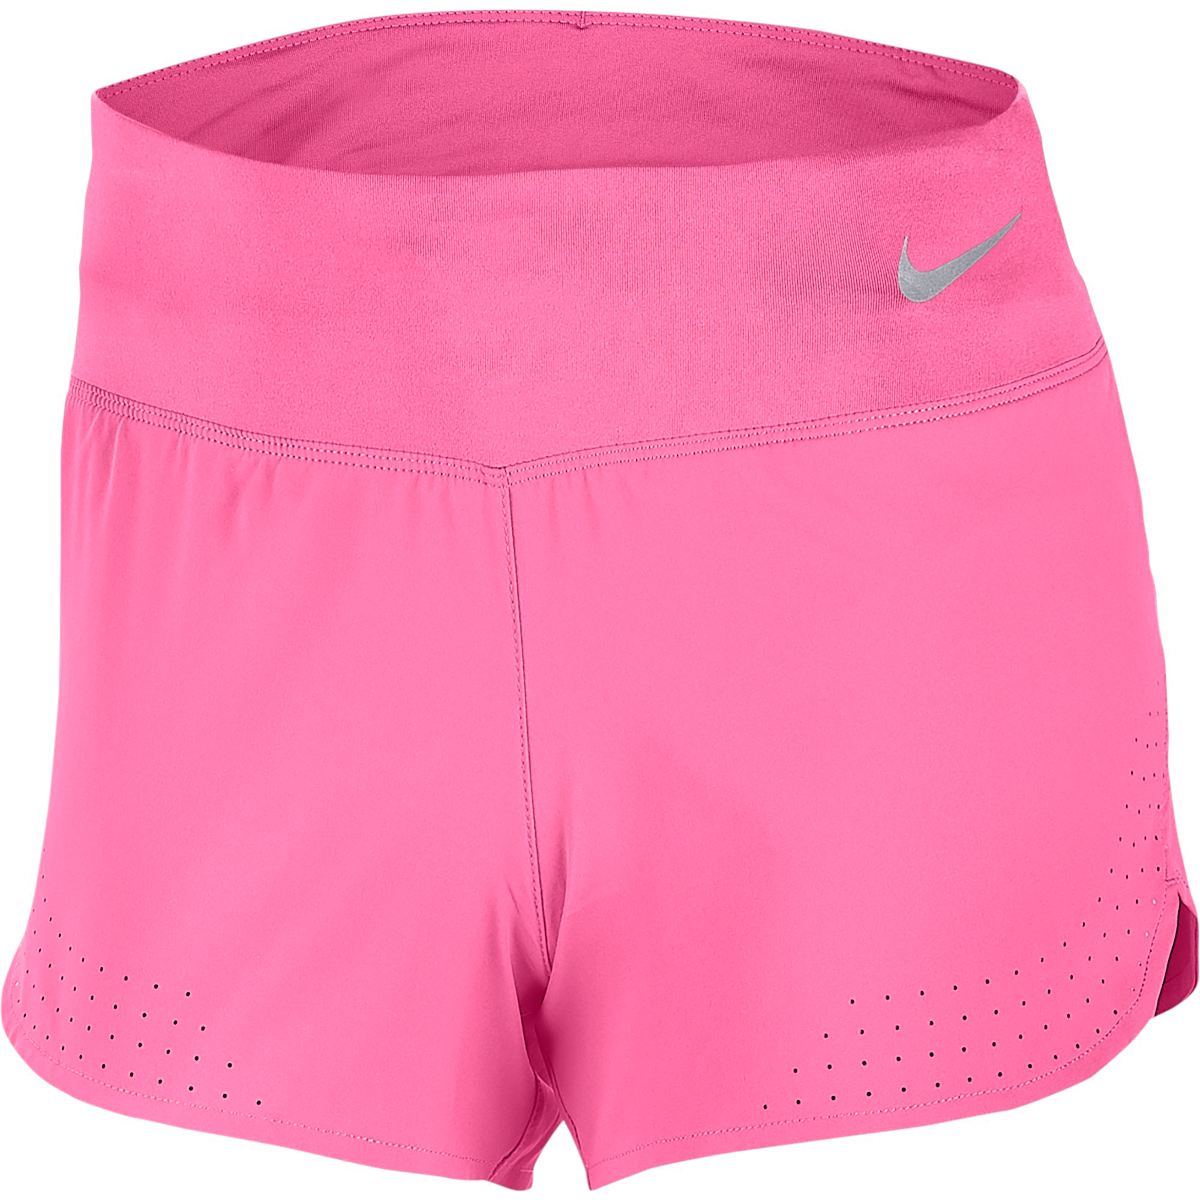 Women's Nike Eclipse 3in Short - Color: Pink Glow/Reflective - Size: XS - Width:, Pink Glow/Reflective, large, image 1